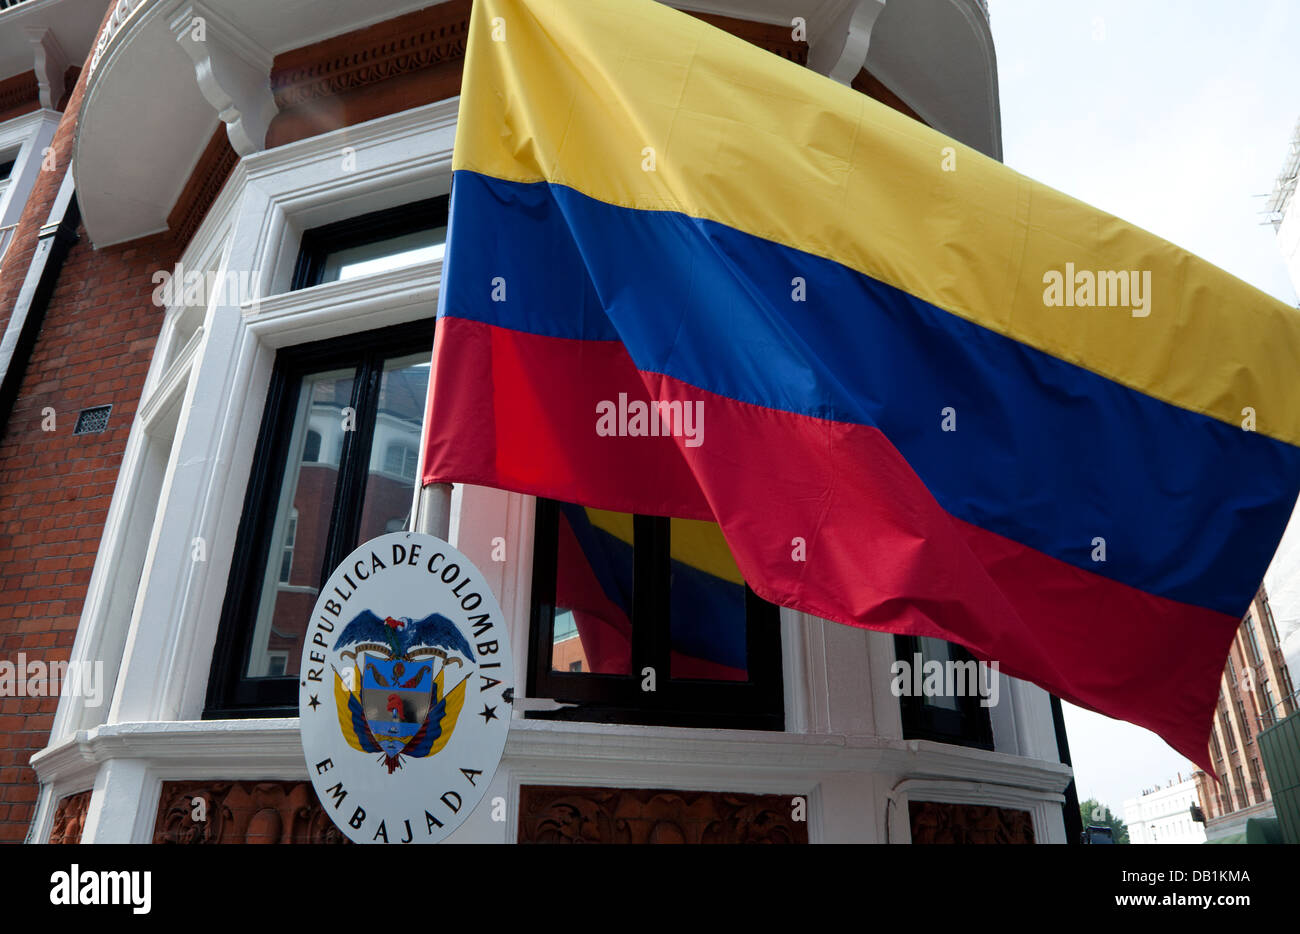 Colombian Embassy & flag, Knightsbridge, London - Stock Image